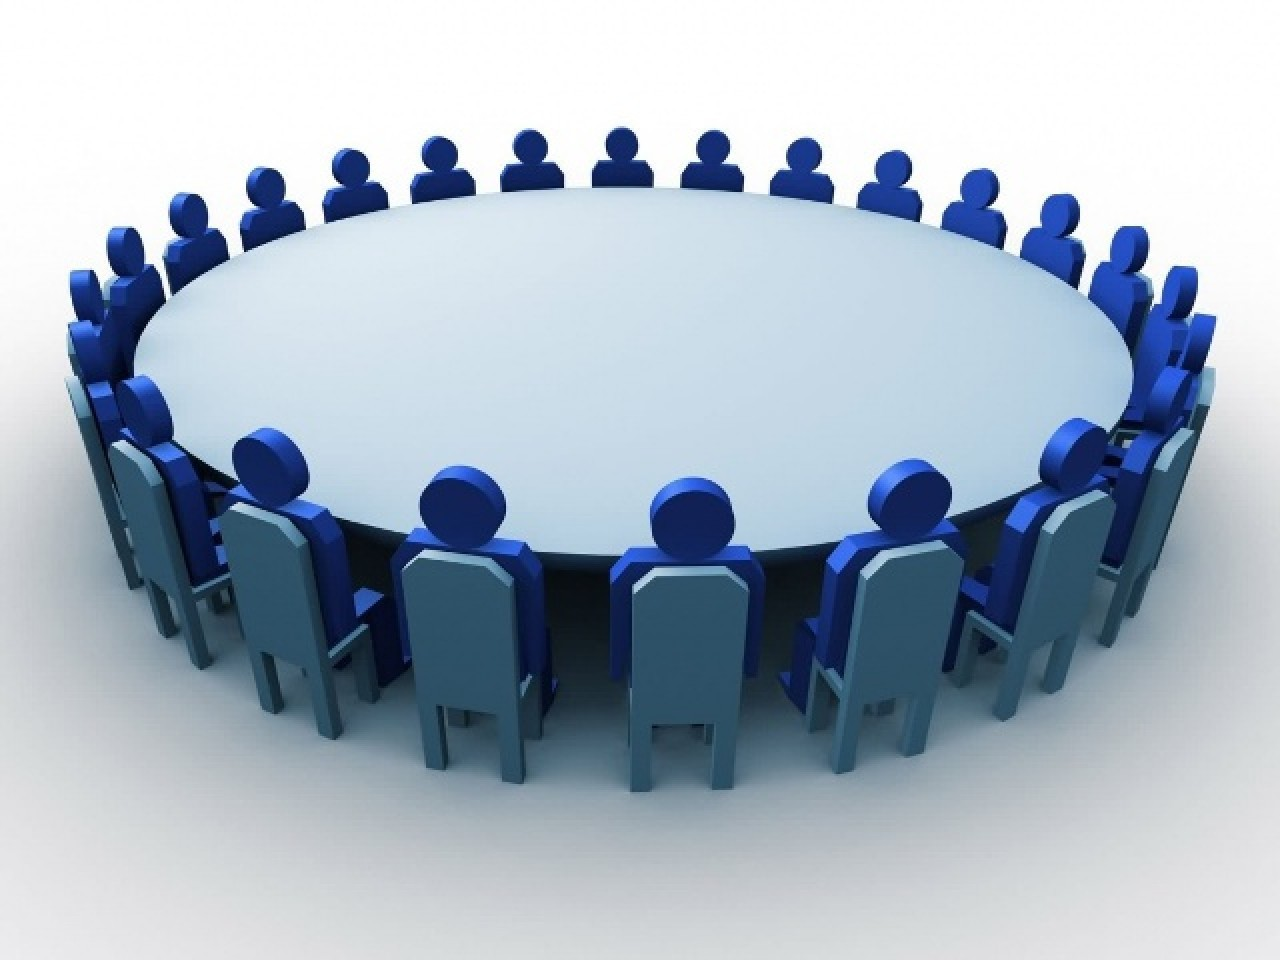 round_table_meeting_